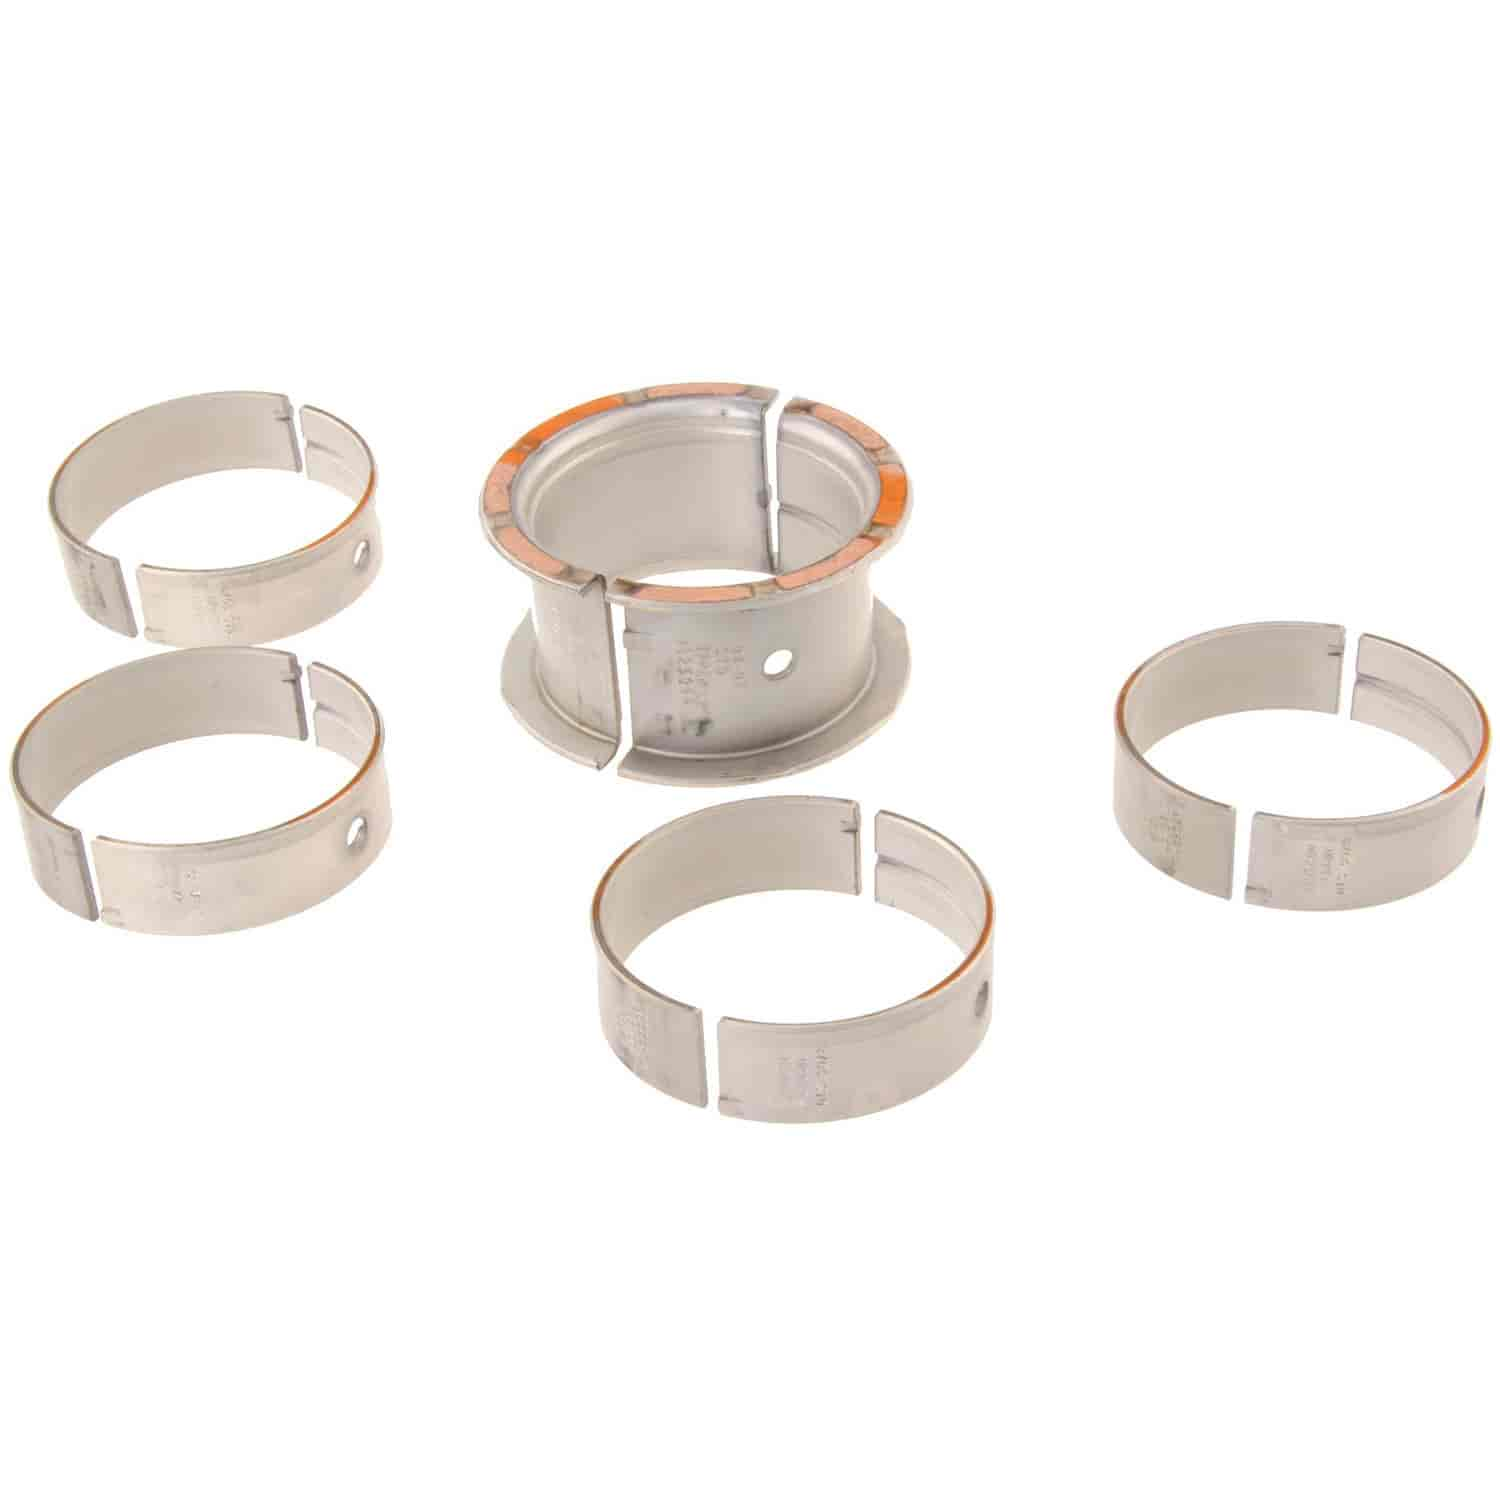 Clevite Mahle Ms909p2 Main Bearing Set Chevy 1968 2002 V8 262 267 327 Power Steering Ckets